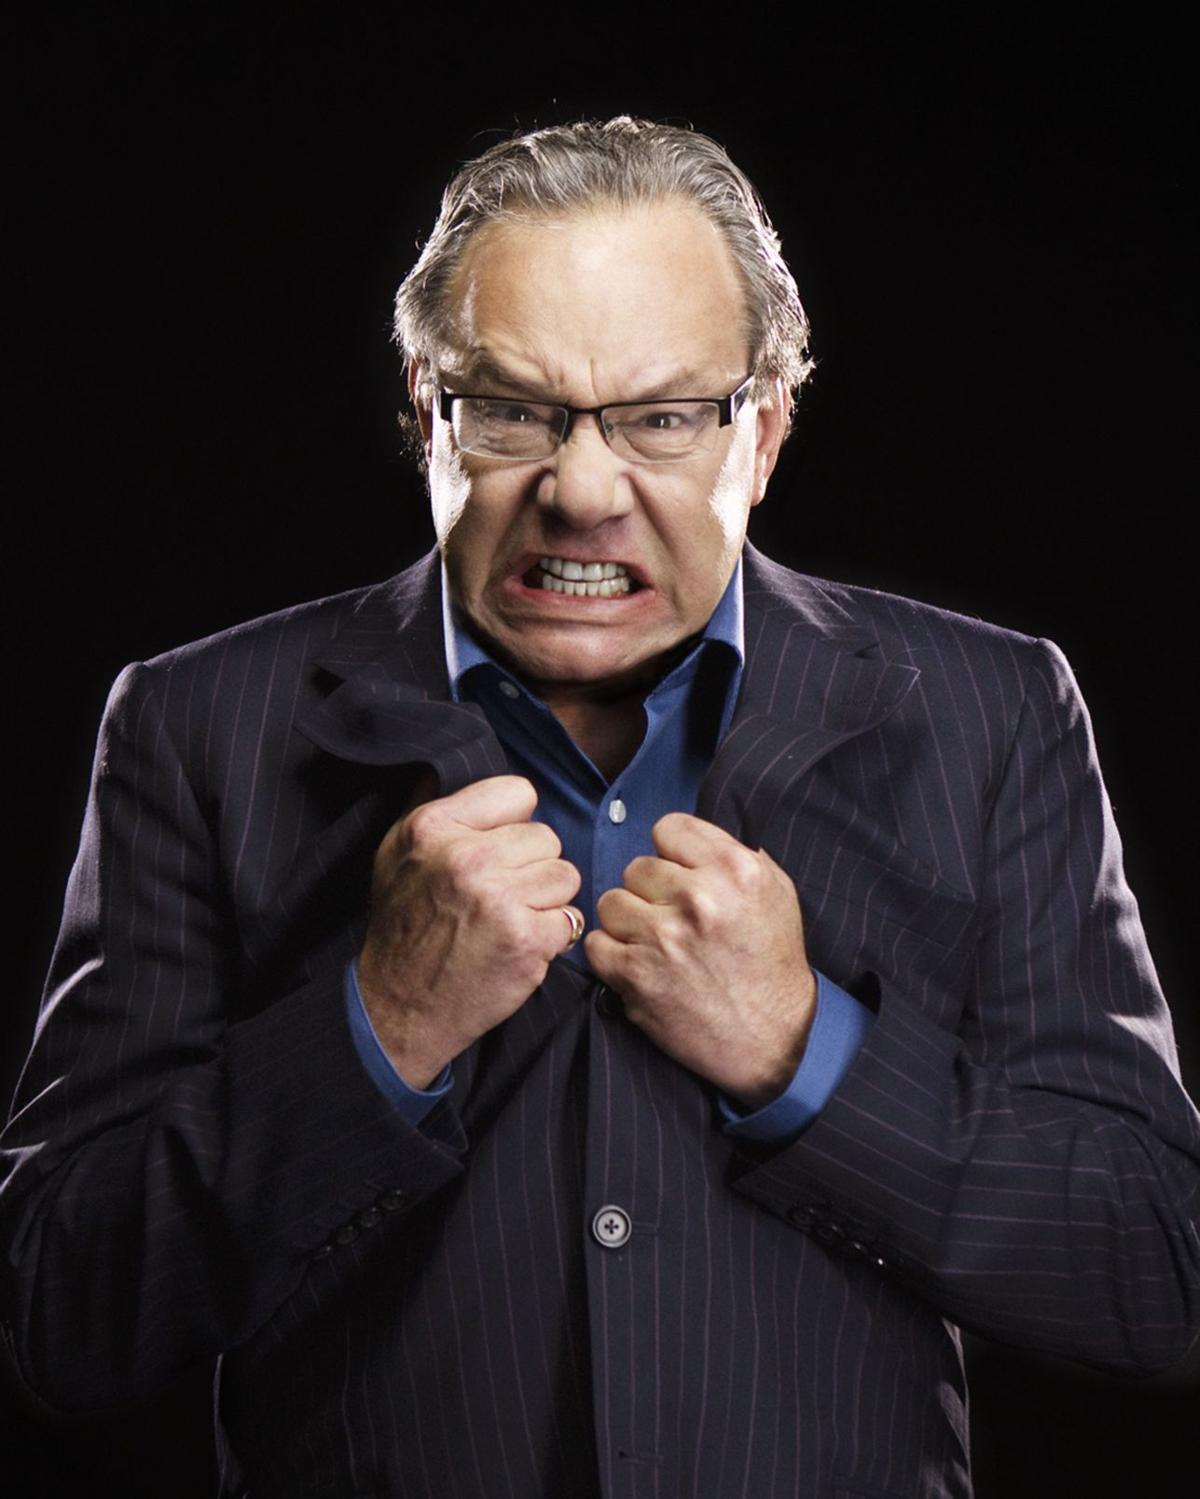 Comedian Lewis Black coming to PAC Oct. 18